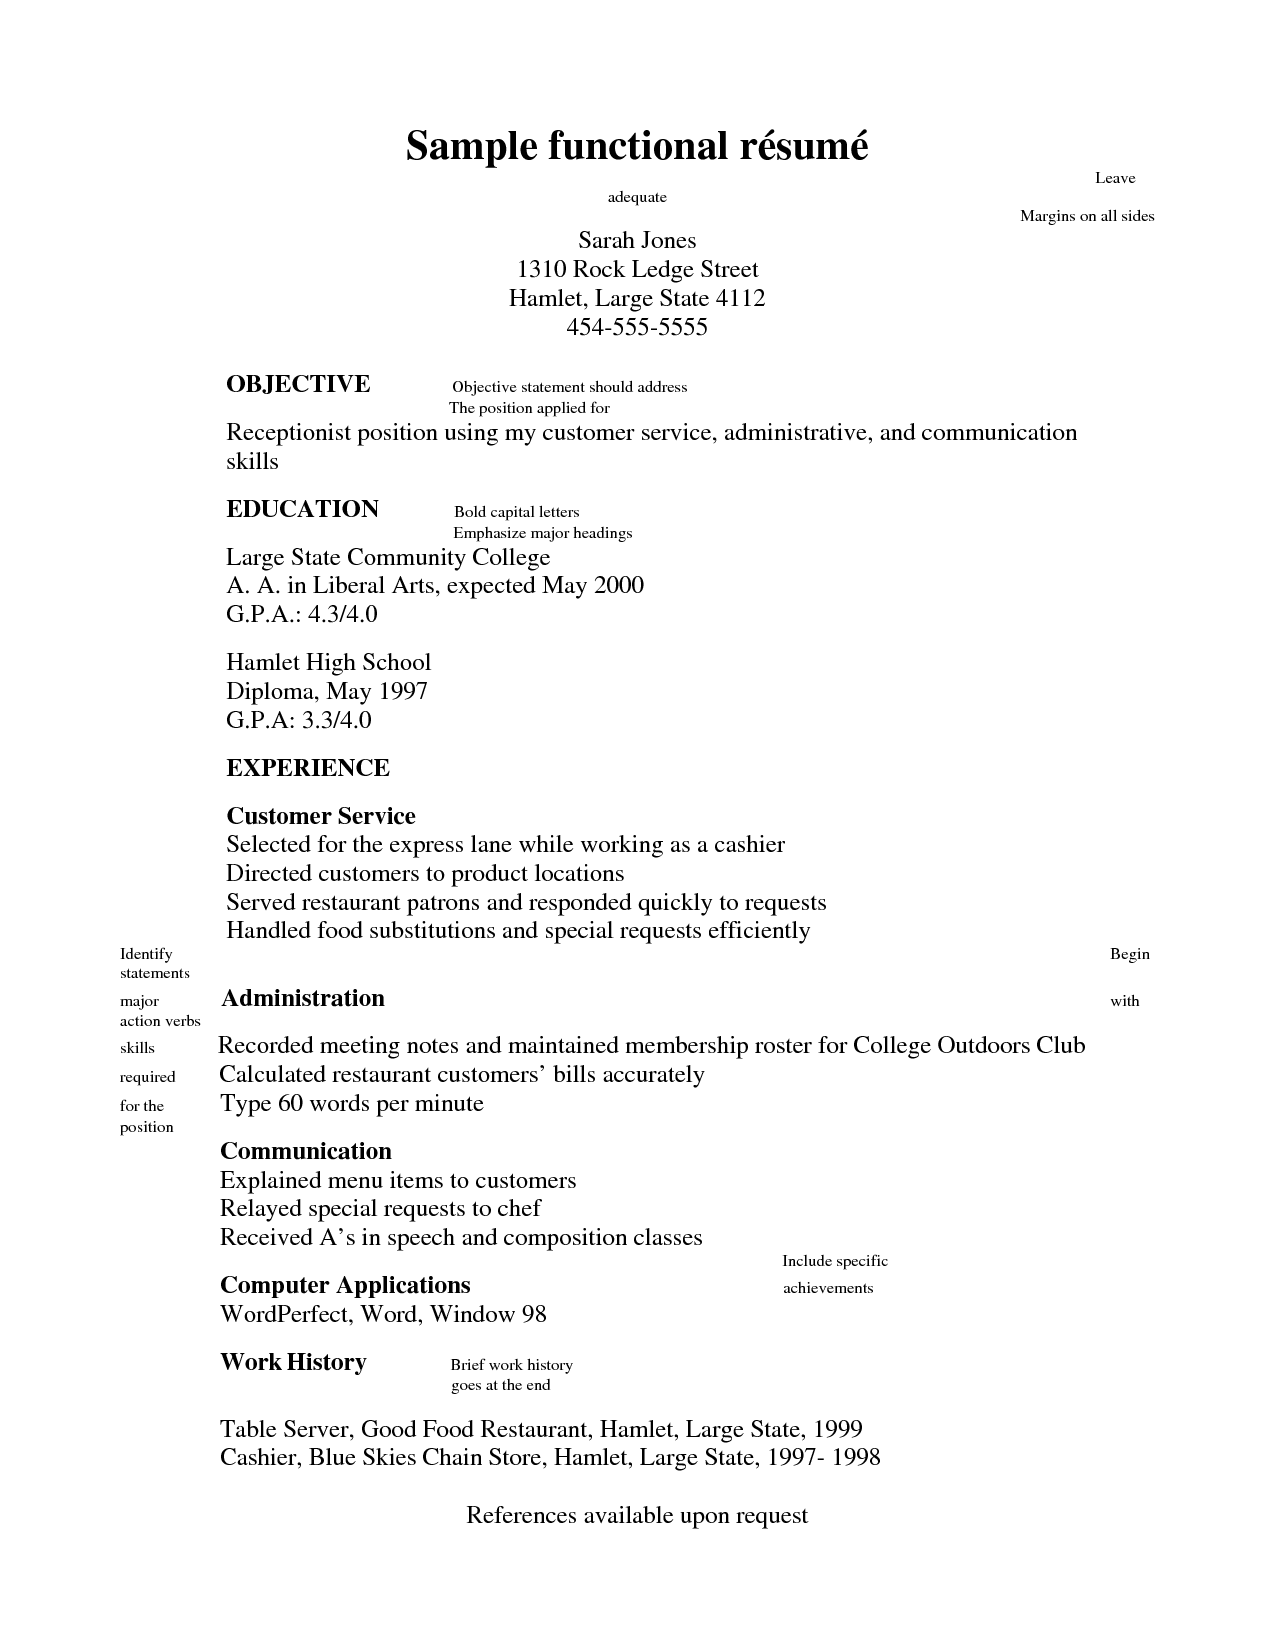 What Is A Good Objective To Write On A Resume Resume Objective Statement